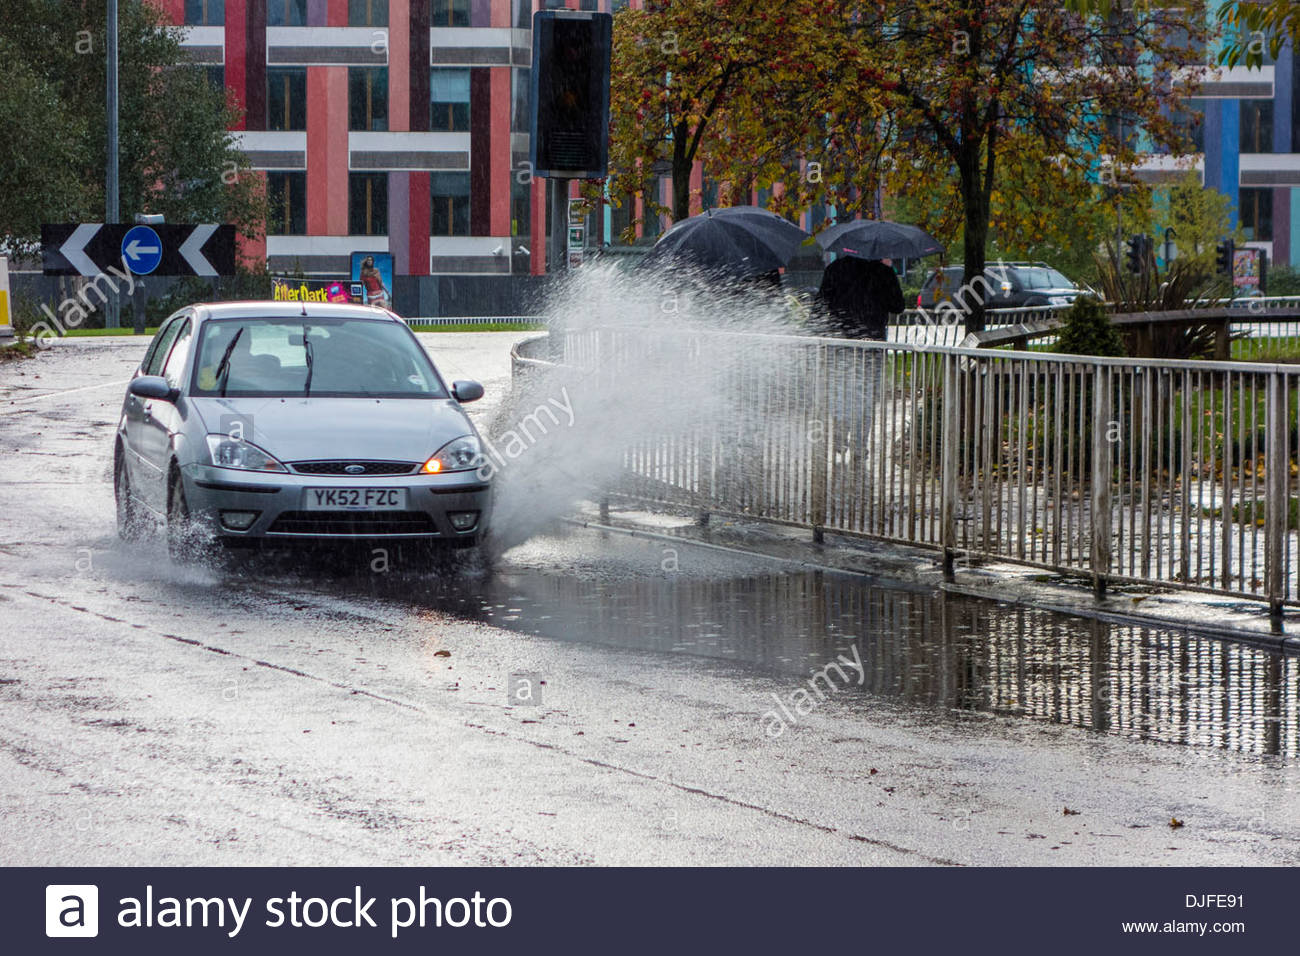 Cars rounding a bend in Sheffield hit a large puddle of water causing spray and splash - Stock Image